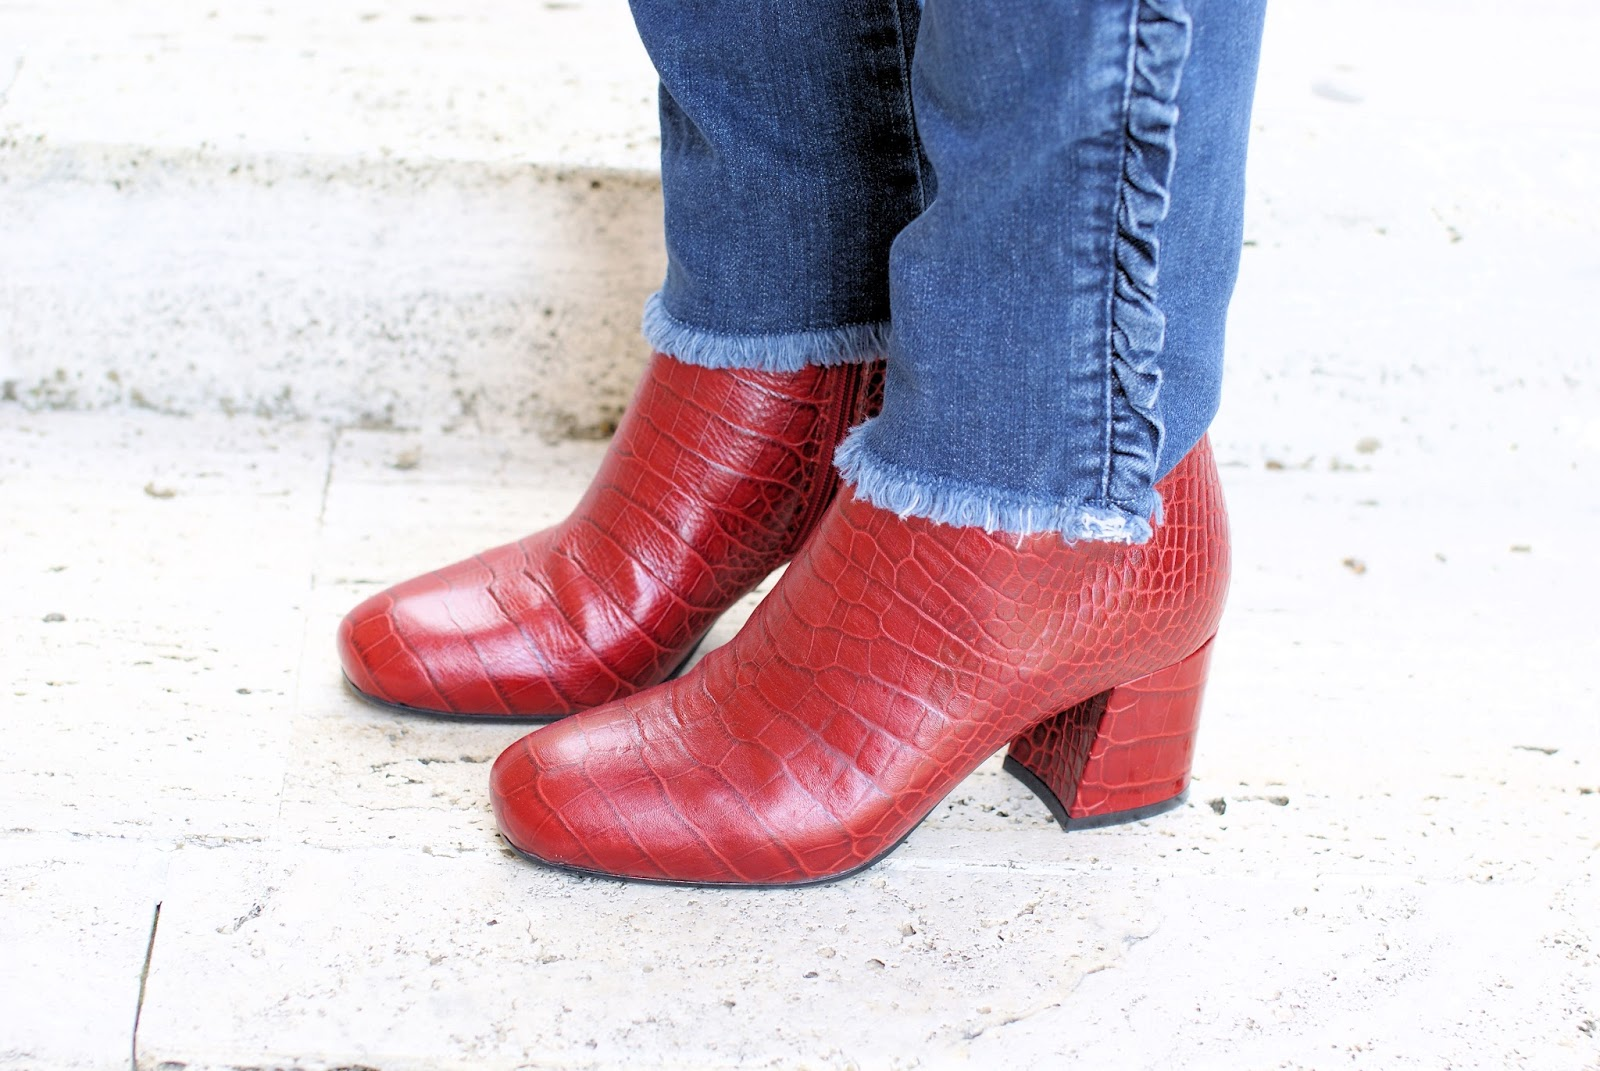 Le Silla croc print red ankle boots on Fashion and Cookies fashion blog, fashion blogger style